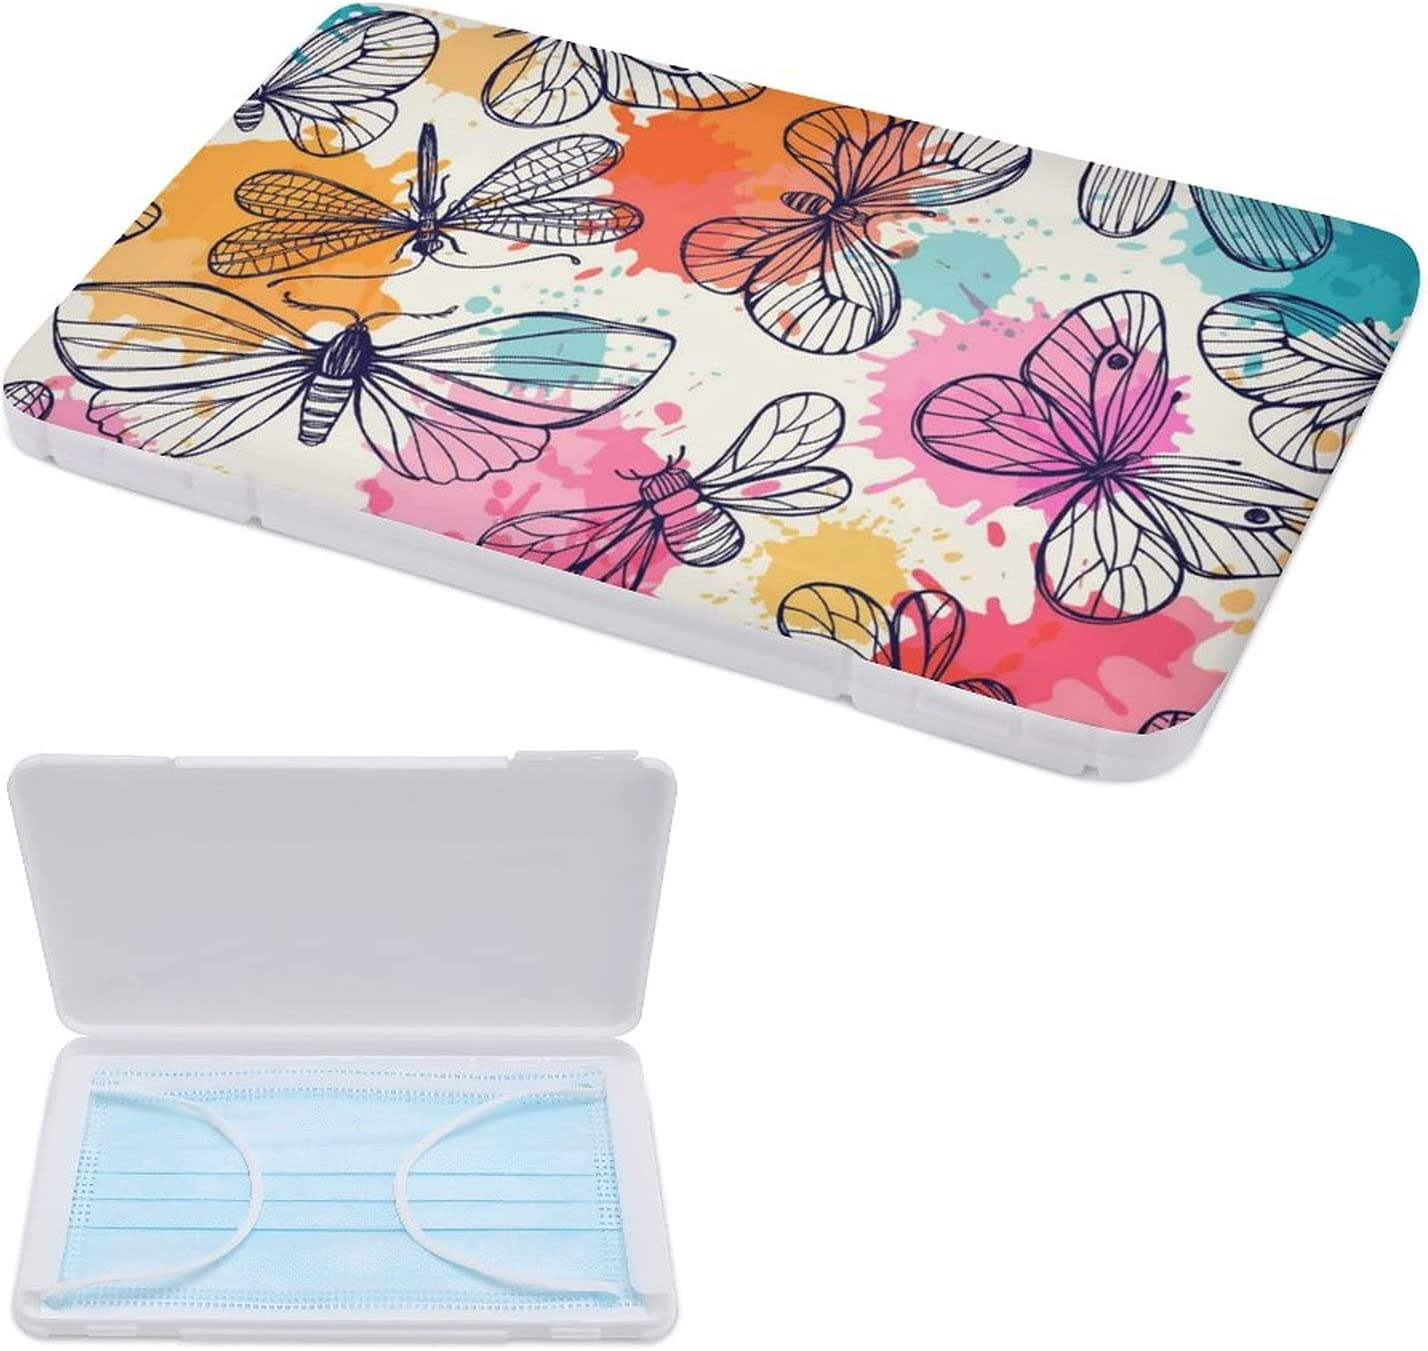 Face Mask Storage Box-Various Pattern Box Very popular Sales for sale Sto Dust Cover